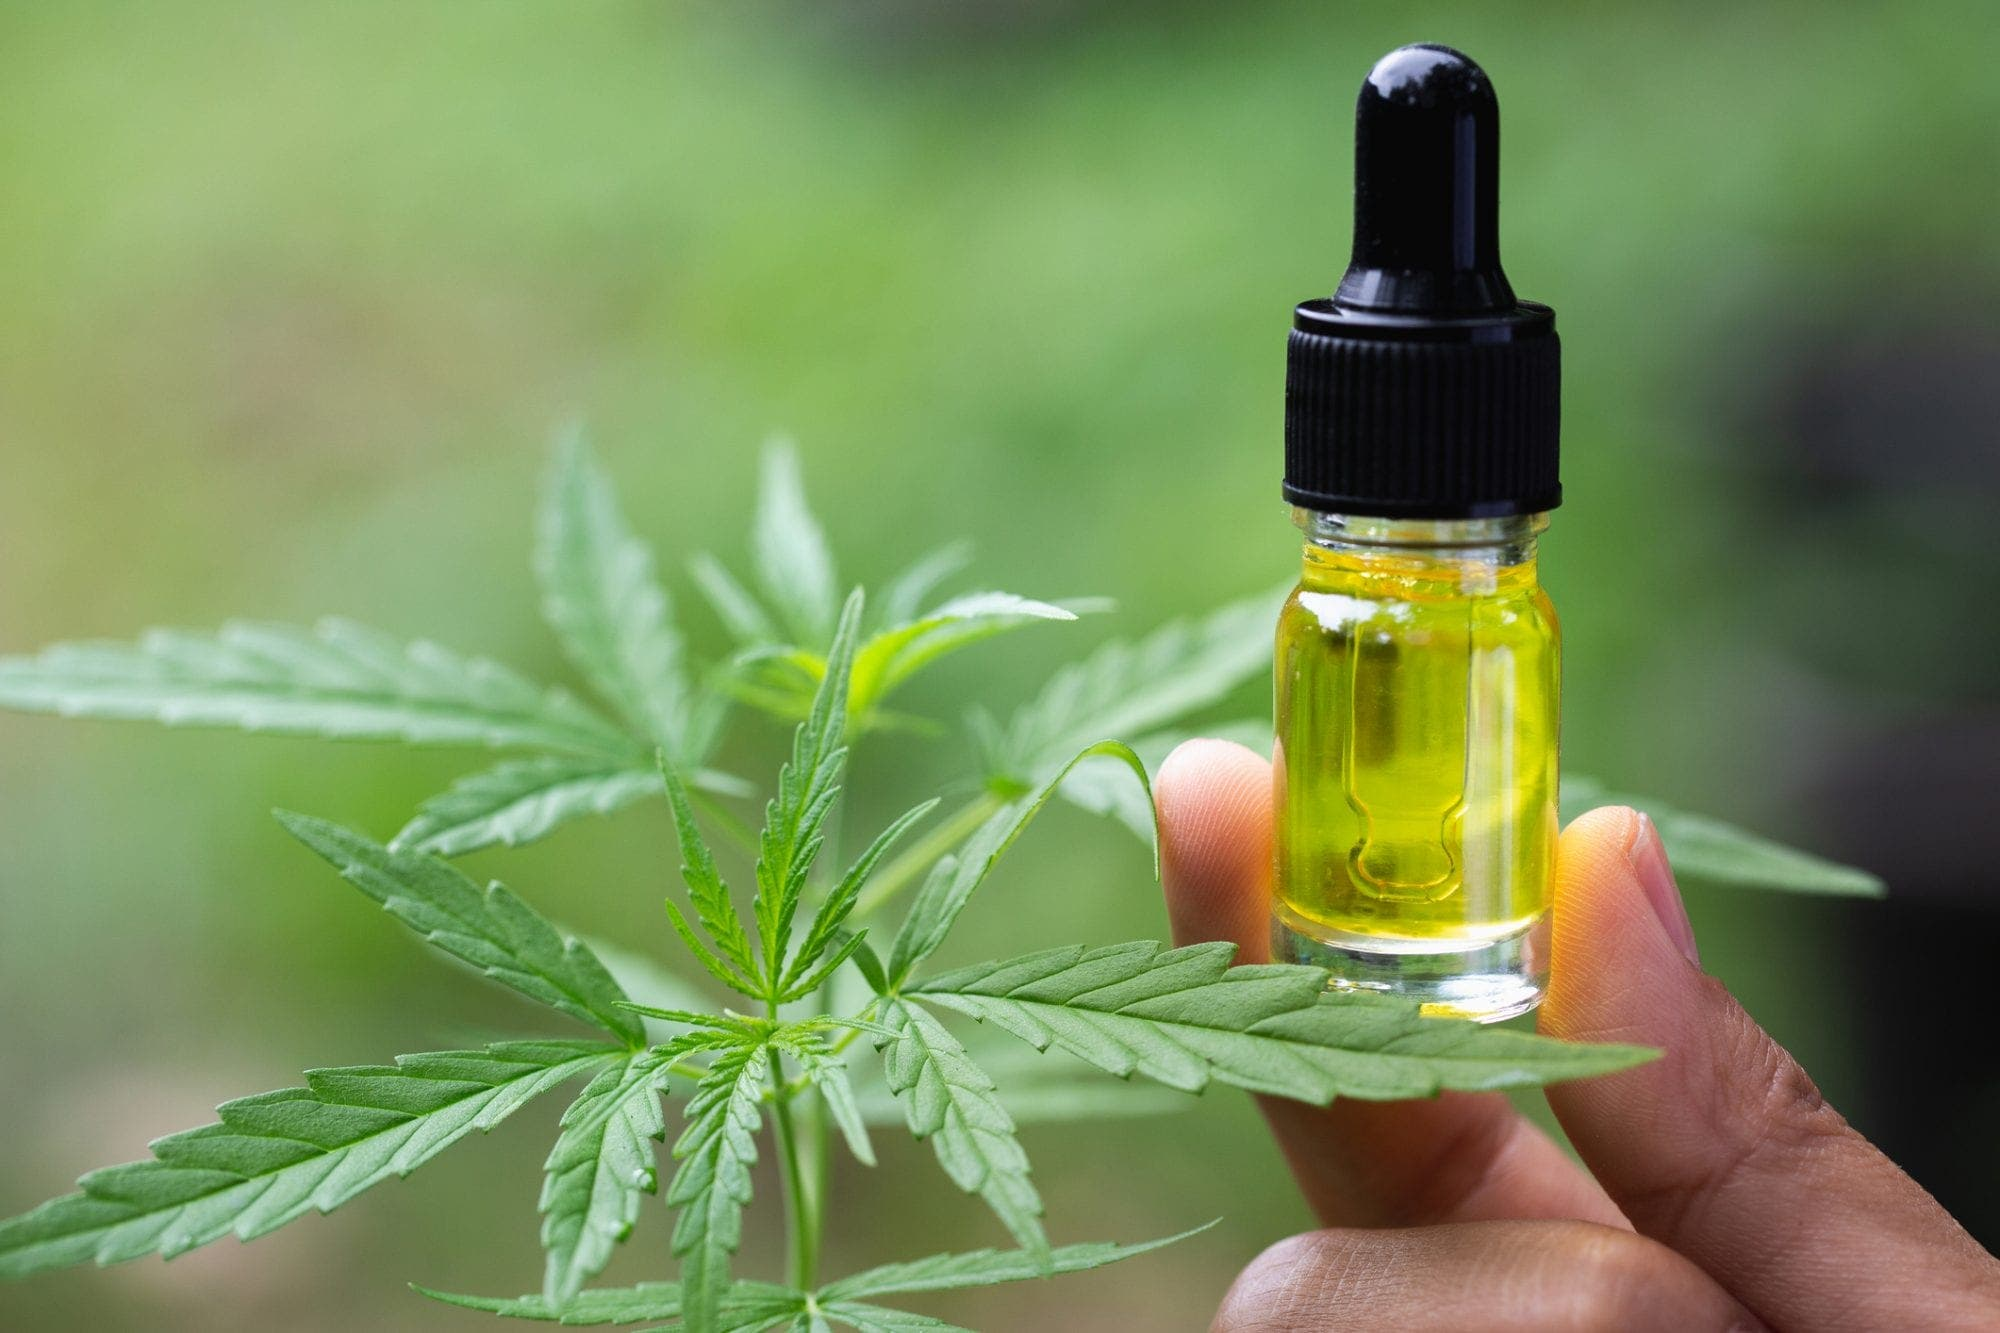 The Cbd Oil Vs Cbd Tincture: What's The Difference? Diaries